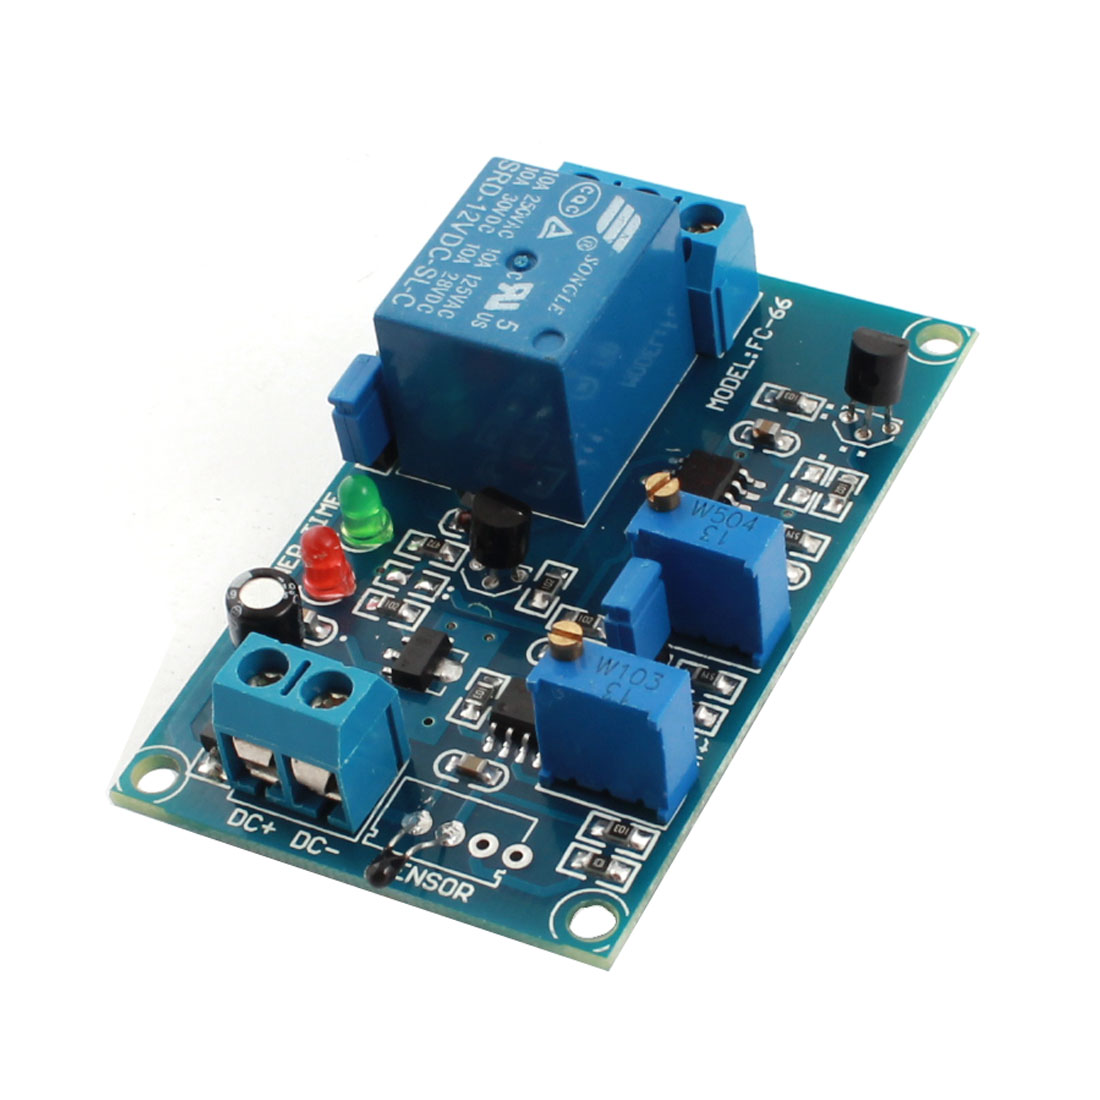 FC-66 DC12V 20S Low Temperature Trigger Thermosensitive Sensor Time Delay Relay Circuit Module Green